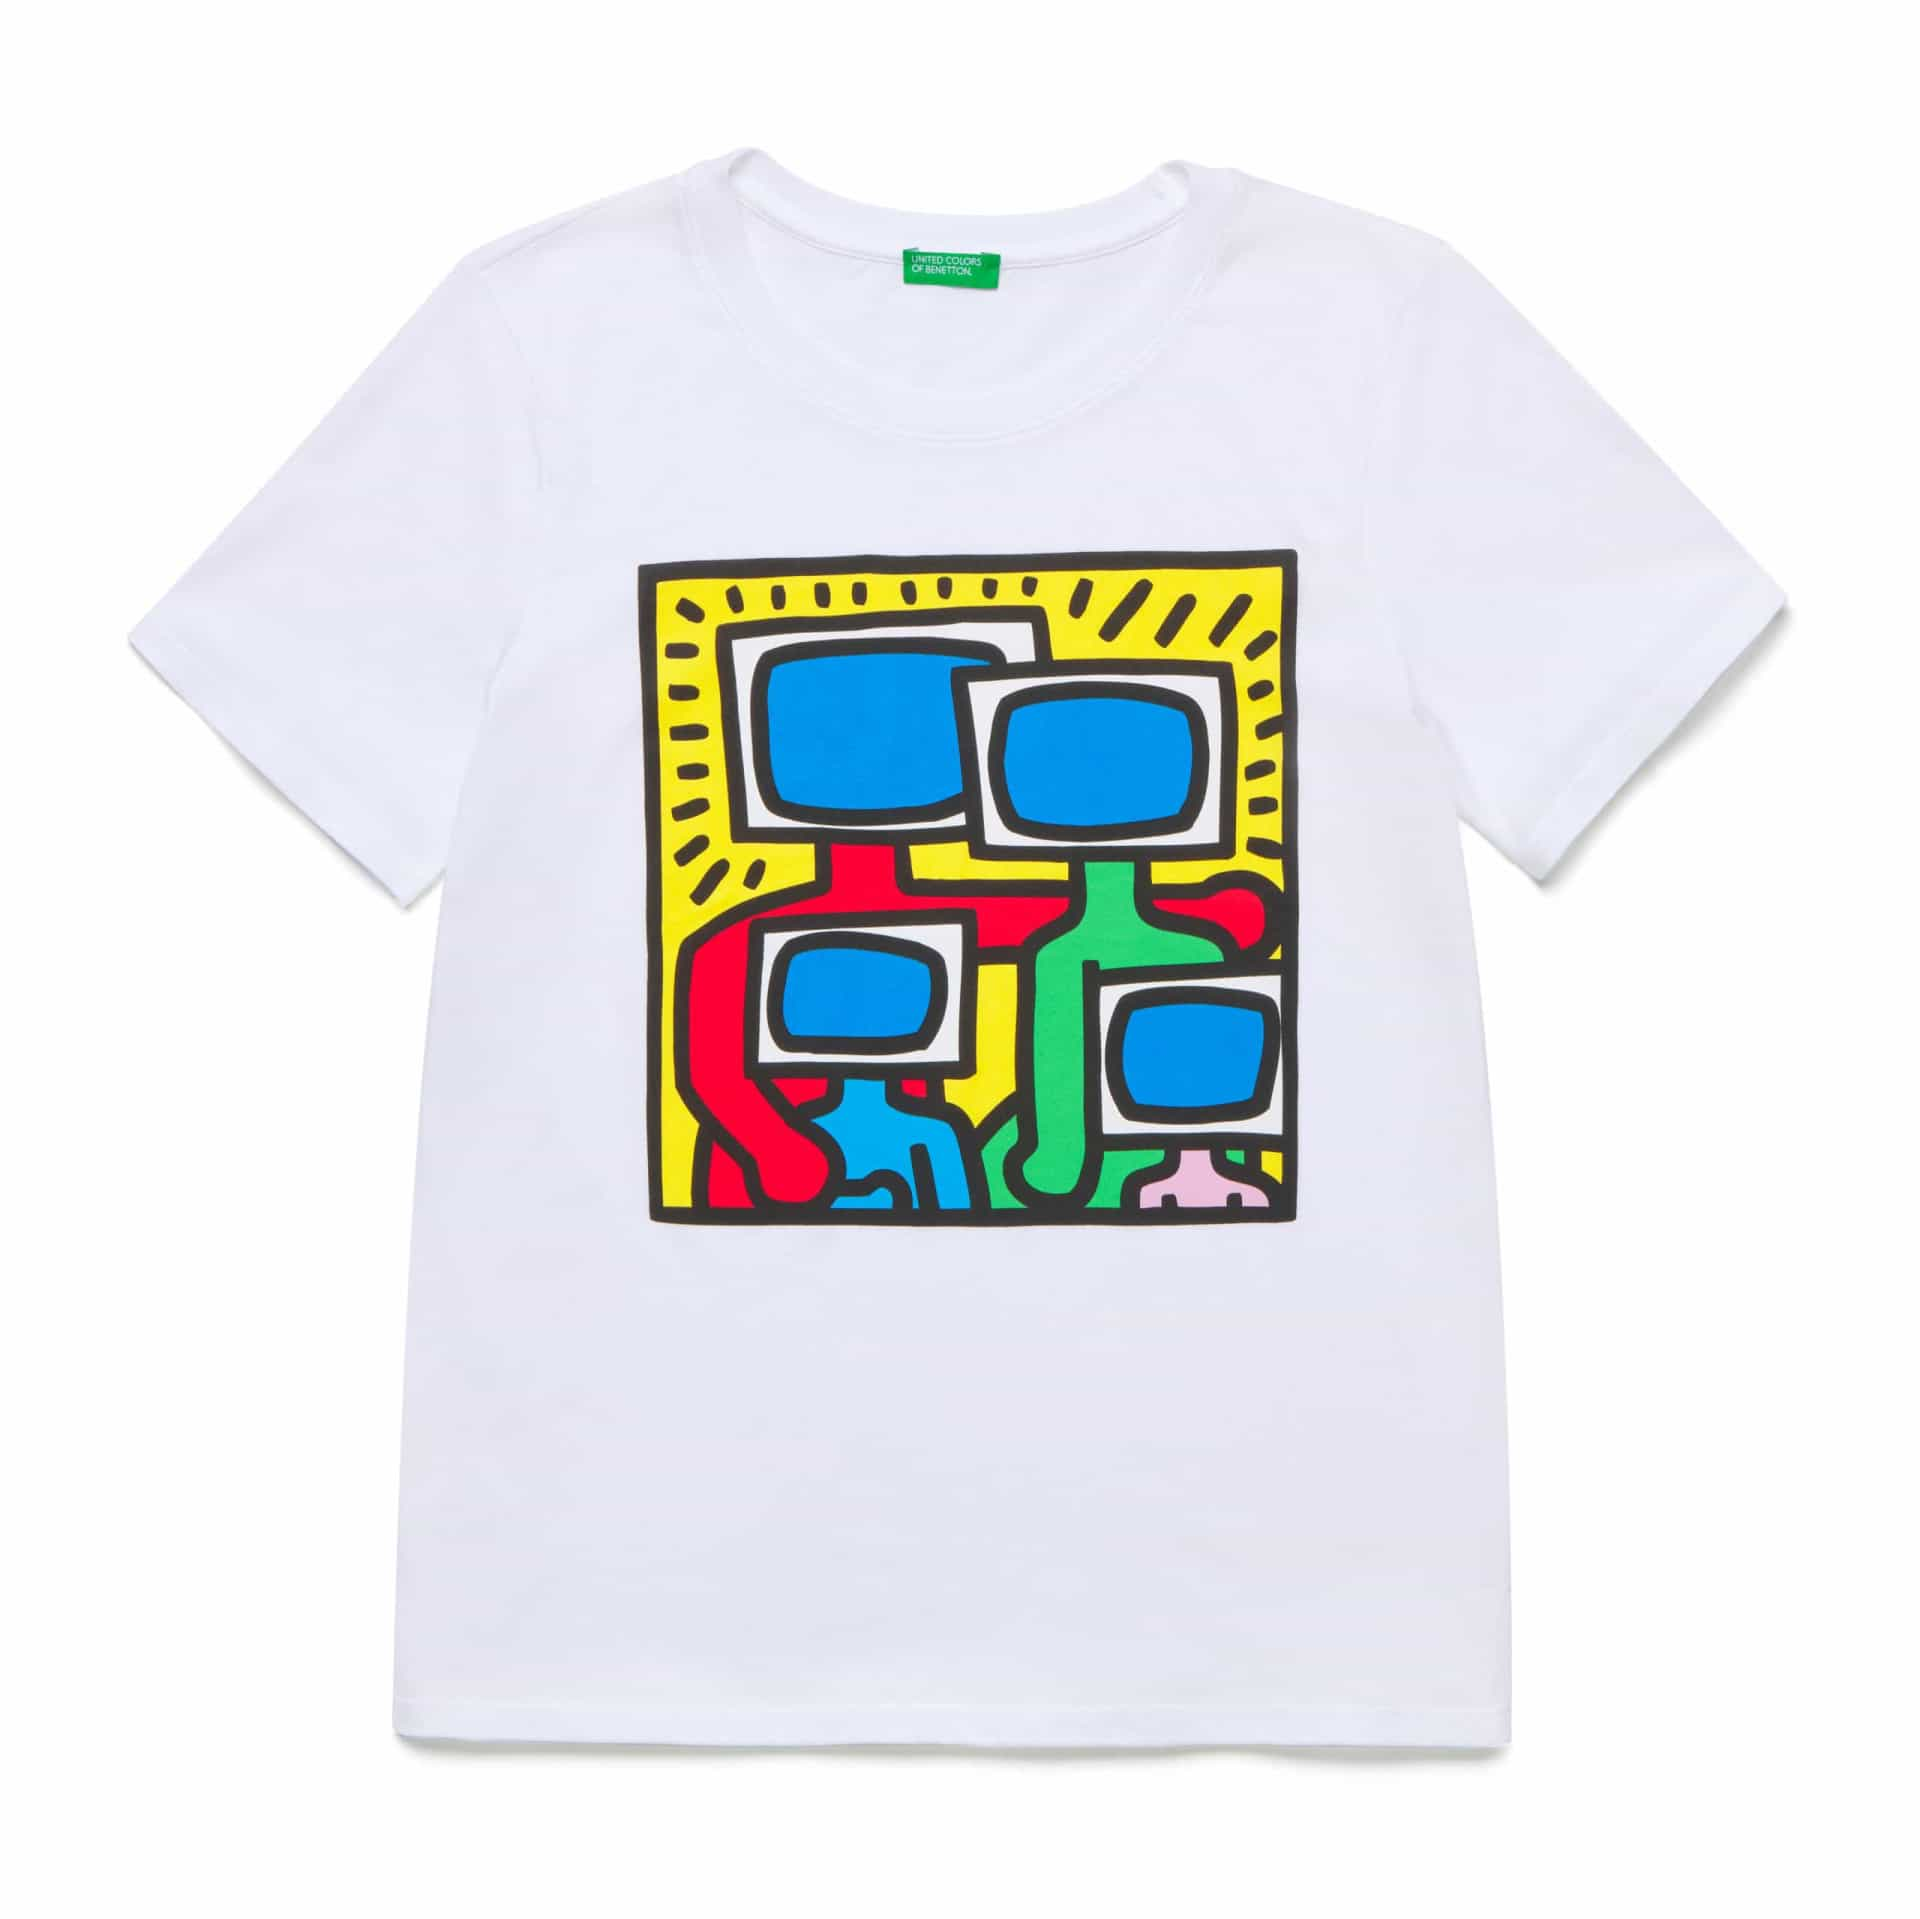 United Colors of Benetton faz homenagem a Keith Haring